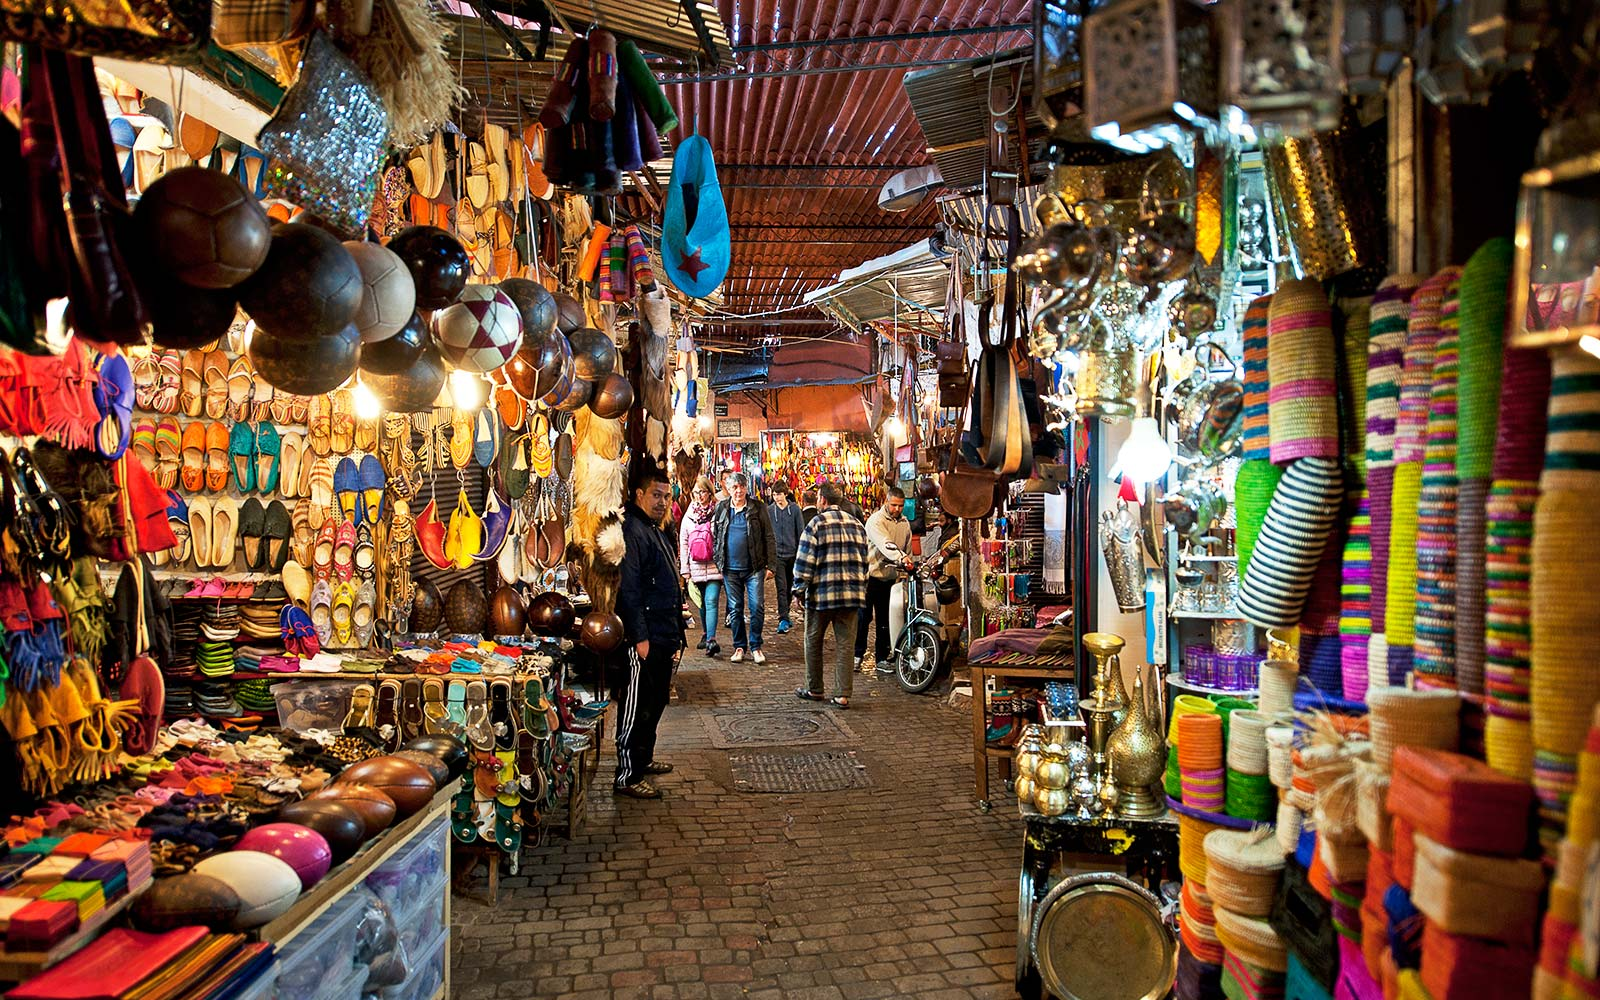 Souk sensation, Marrakech, Morocco